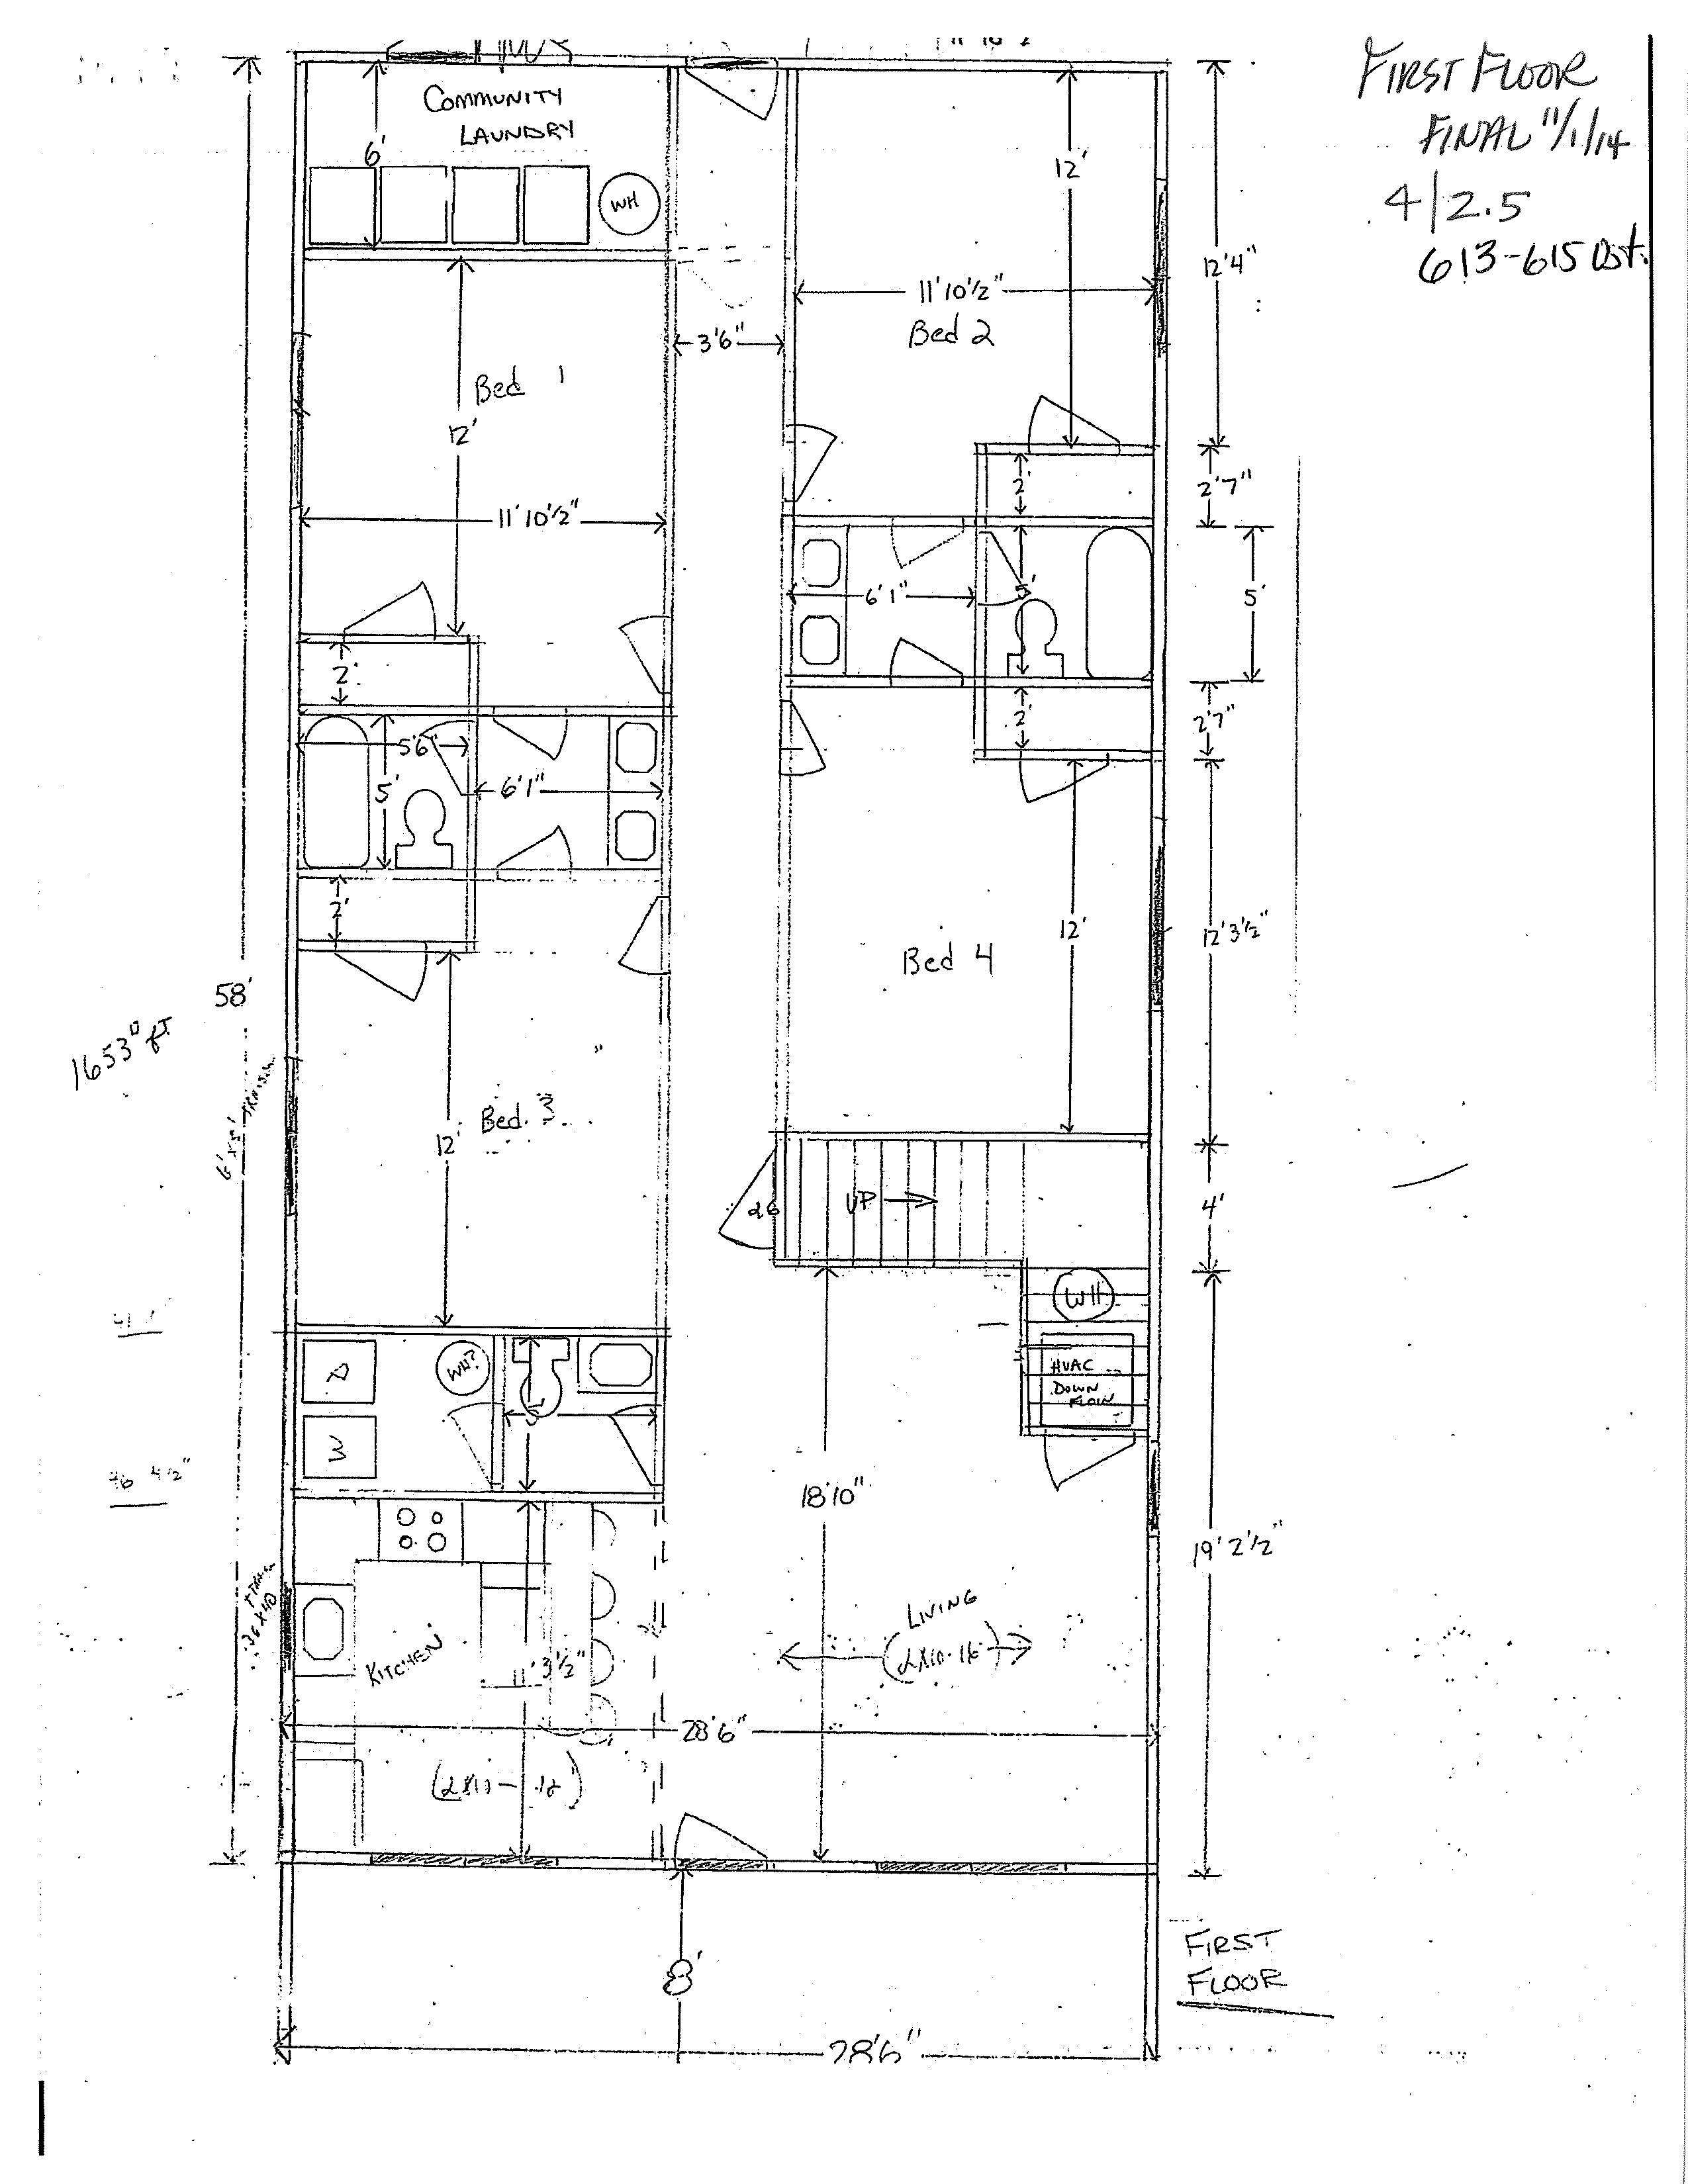 808 W. Normal Floor Plan